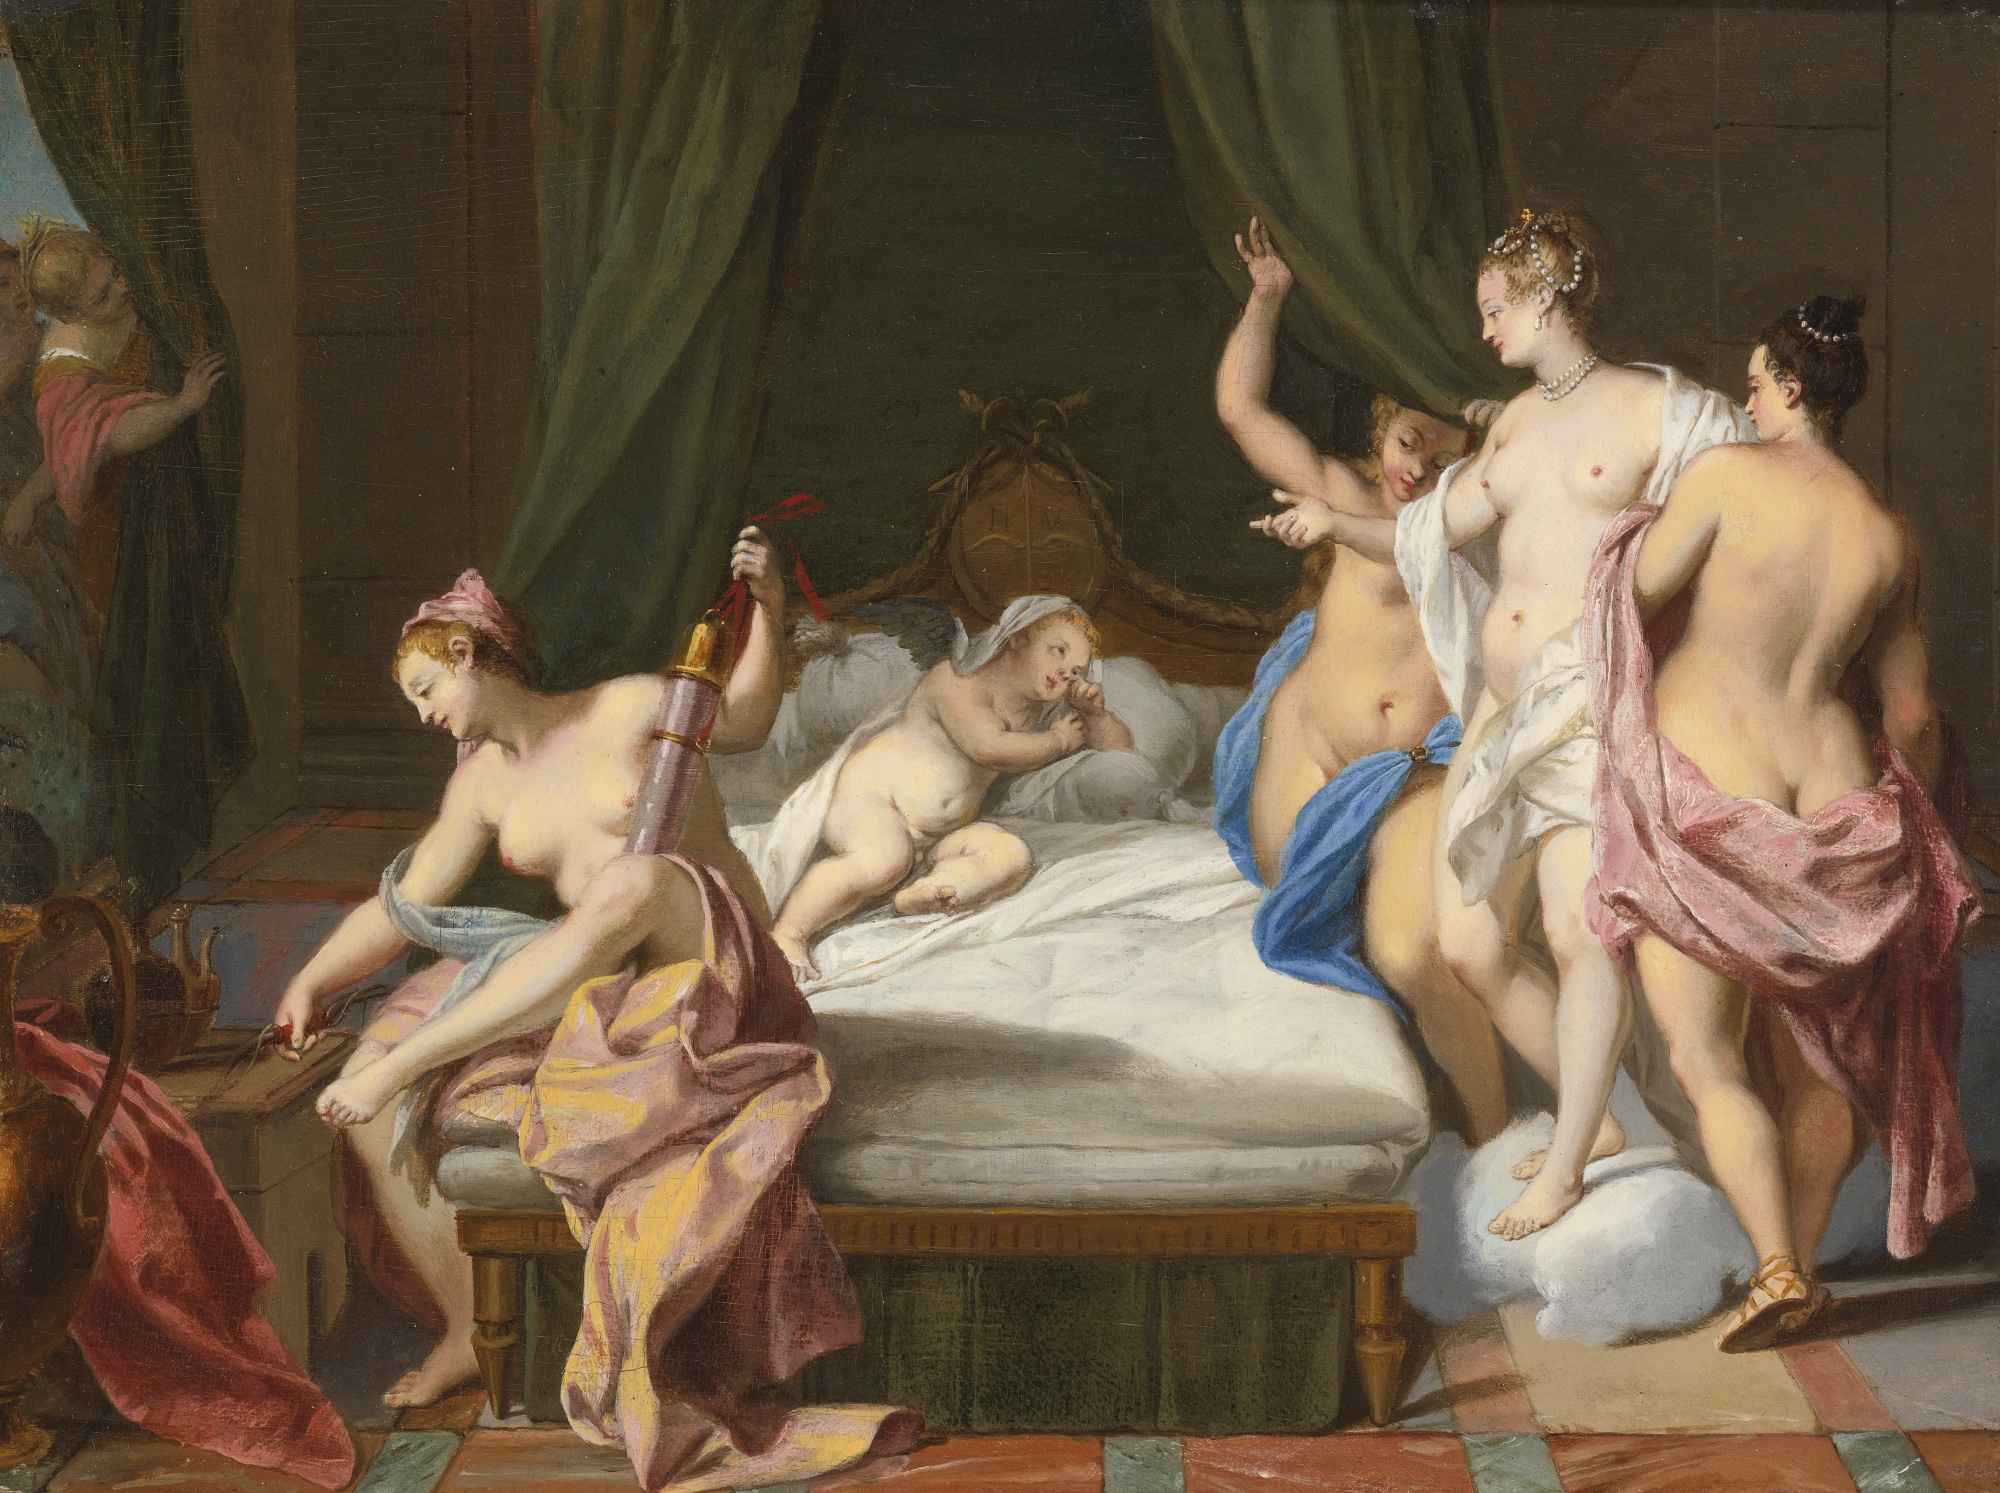 Venus and Three Graces Paintings